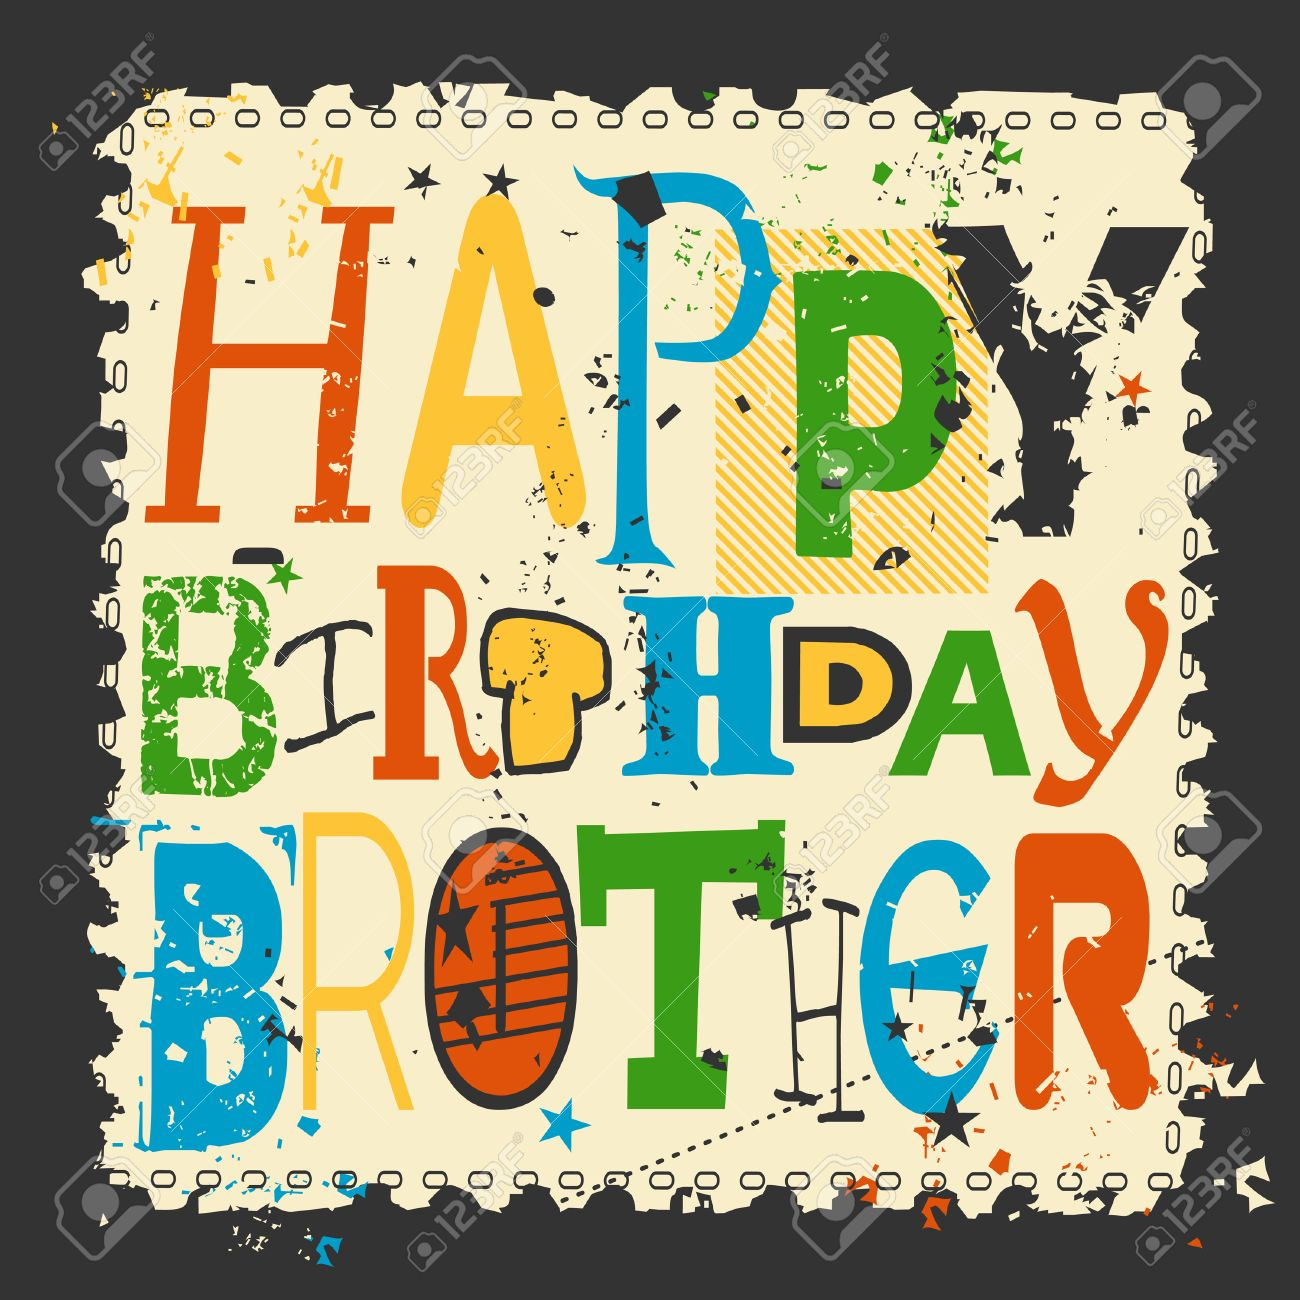 free happy birthday brother clipart ; 52938752-retro-happy-birthday-card-on-grunge-background-happy-birthday-brother-vector-illustration